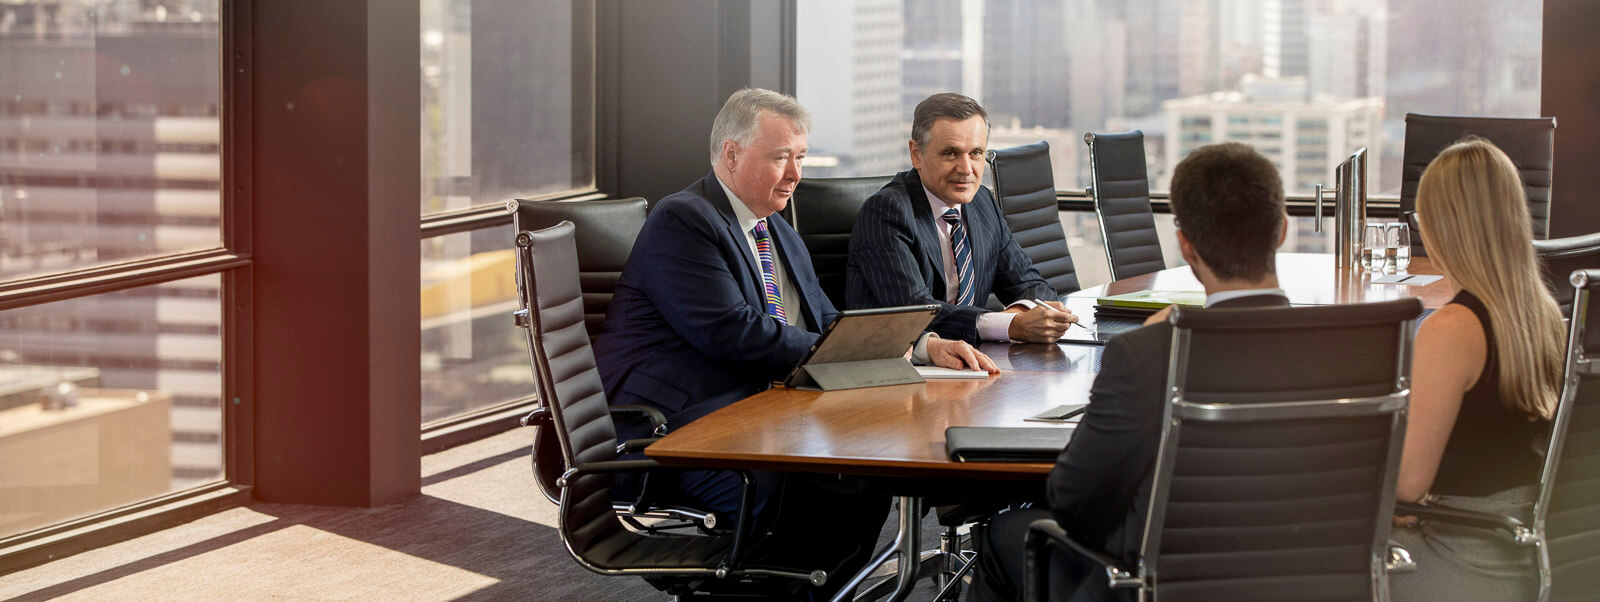 two male lawyers in boardroom with city views with clients posing for boardroom photography